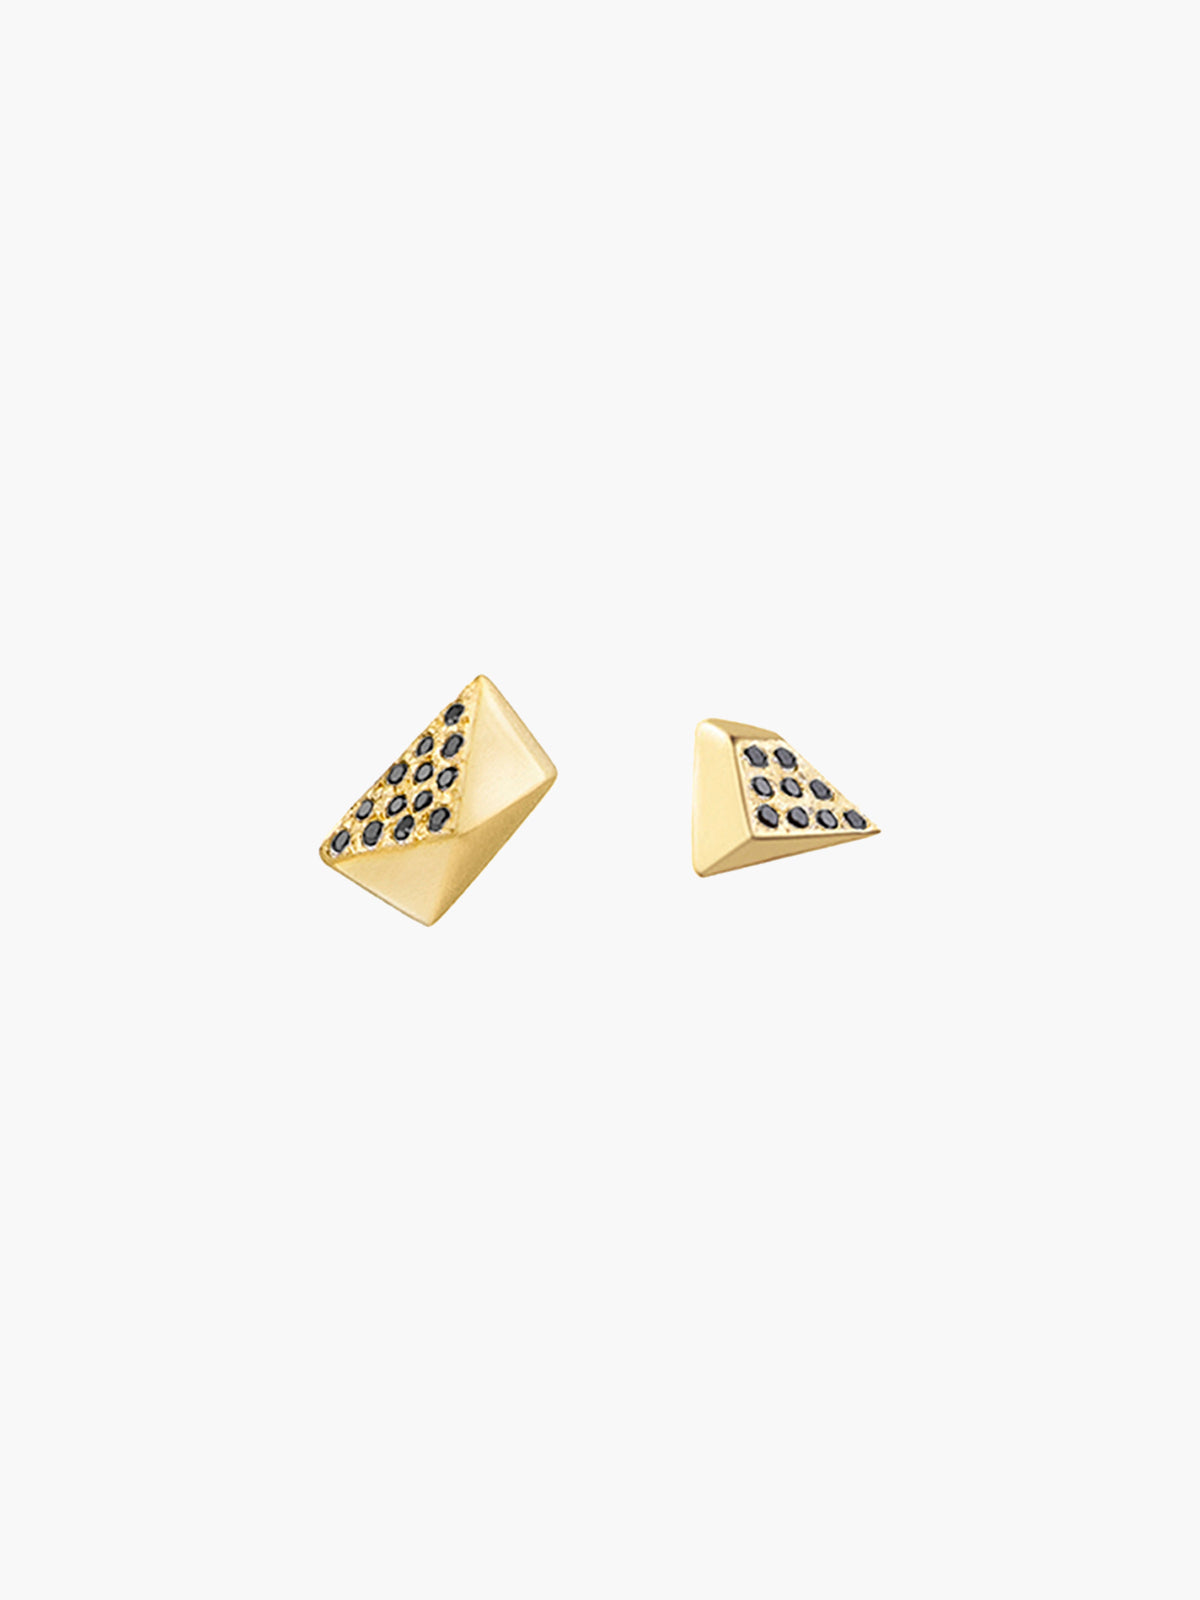 Mismatched Pyramid & Triangle Studs | Black Diamond